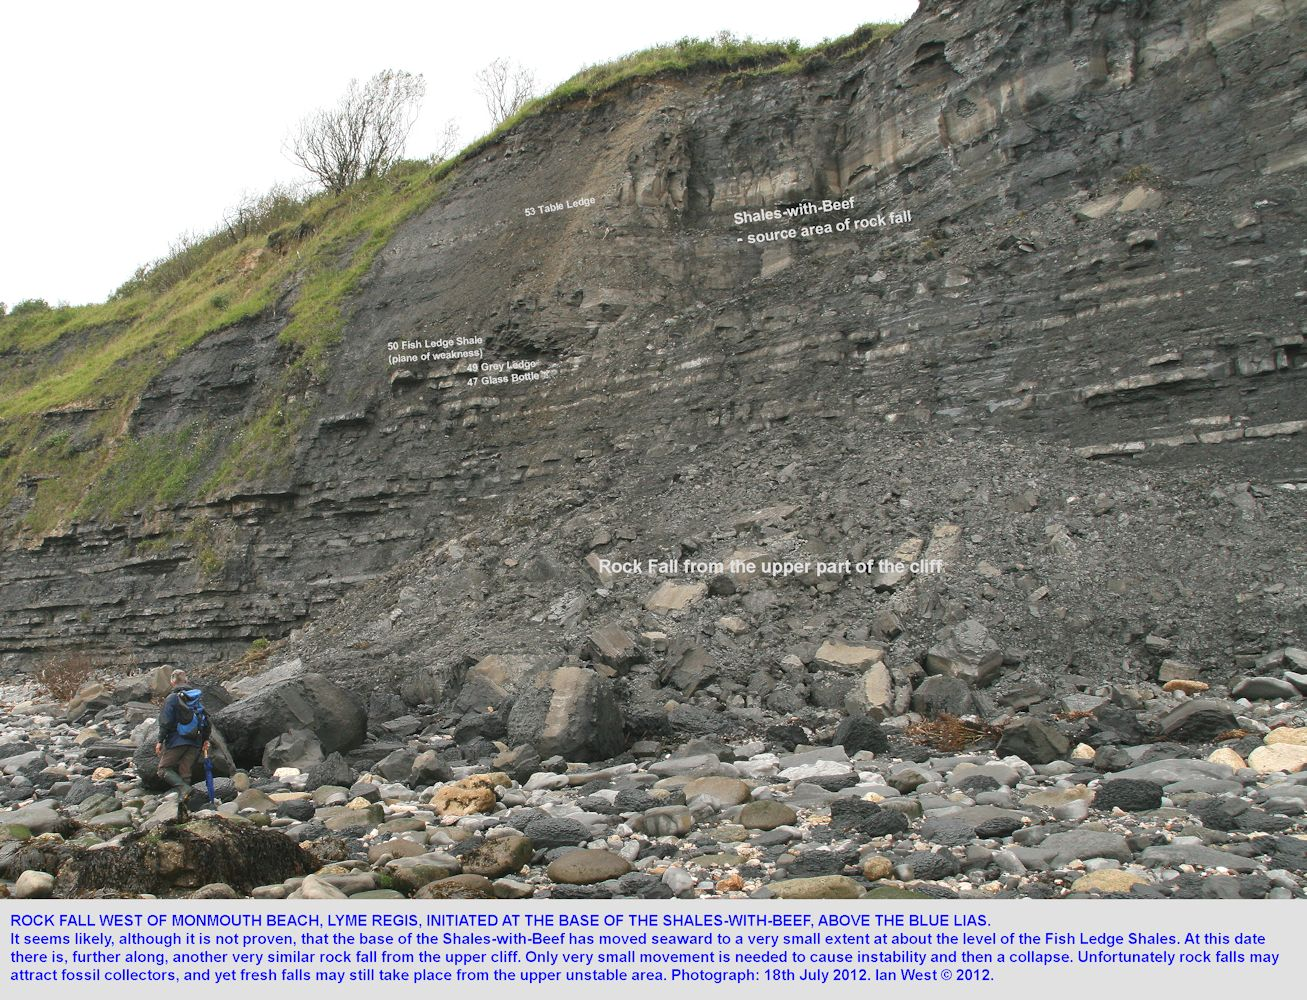 A rock fall from the Shales-with-Beef, above the Blue Lias, west of Monmouth Beach, Lyme Regis, Dorset, 18th July 2012